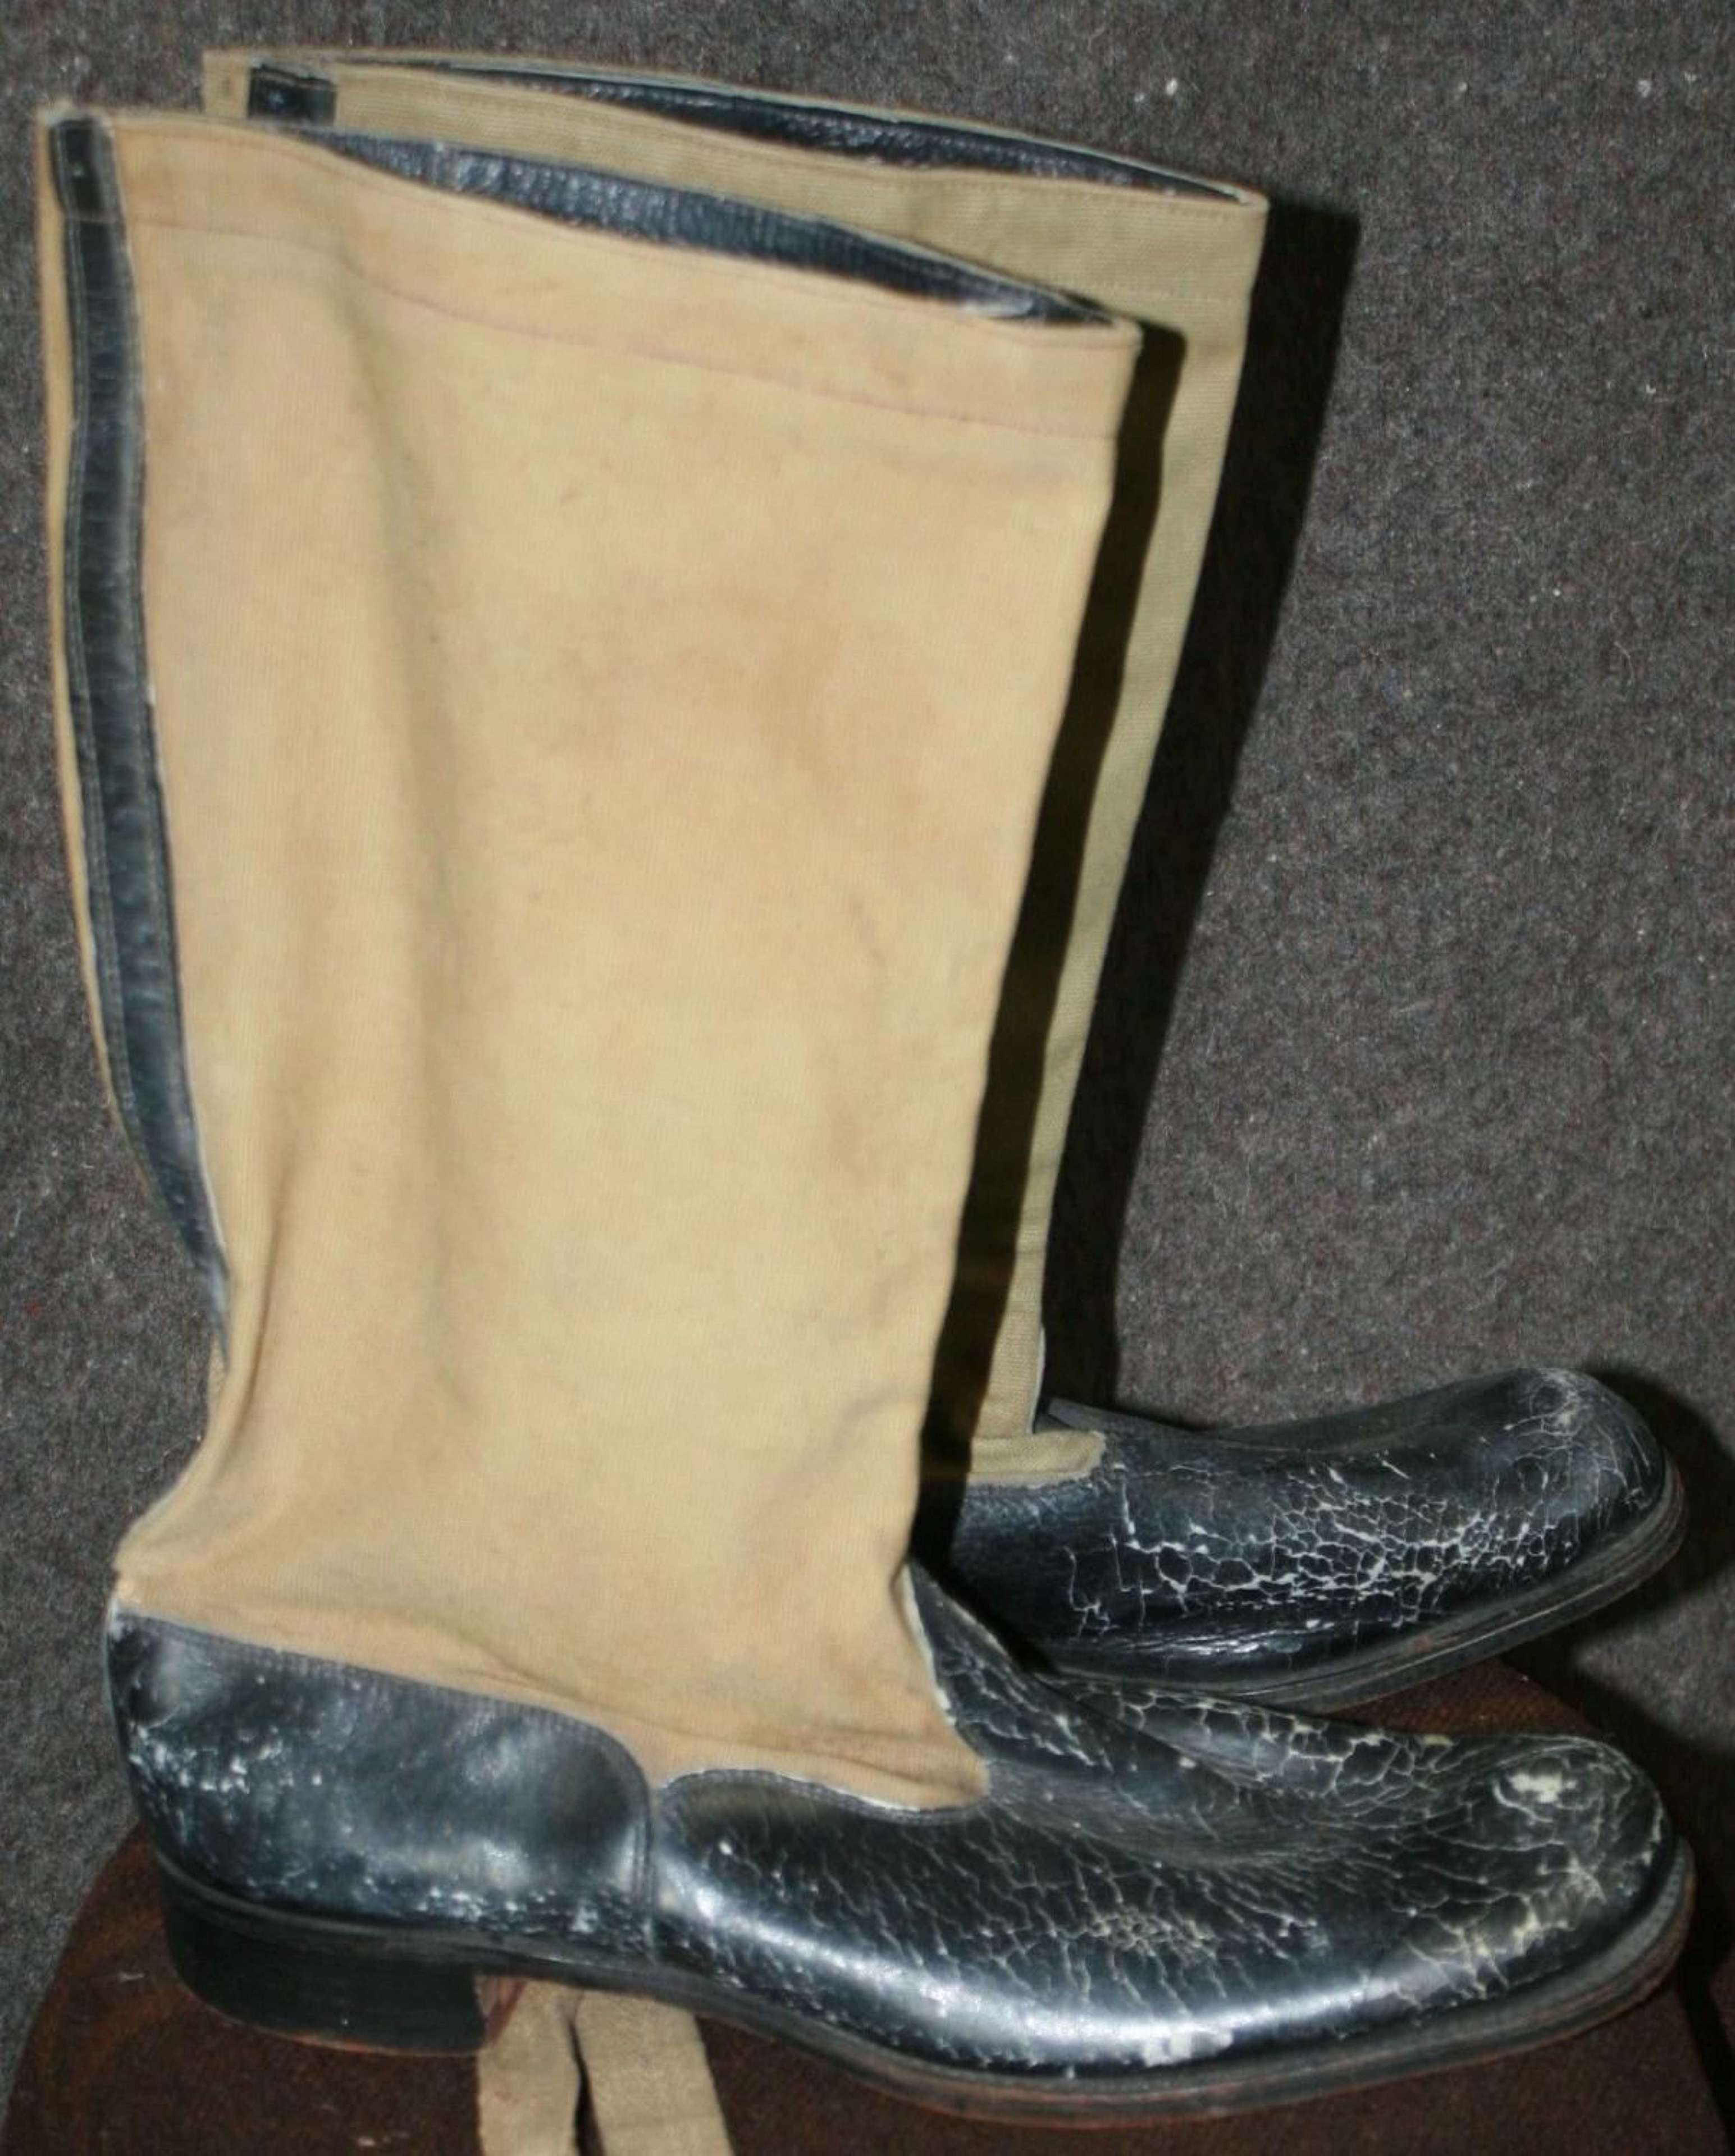 A PAIR OF THE RAF MOSQUITO BOOTS WHICH ARE 1945 DATED USED CONDITION